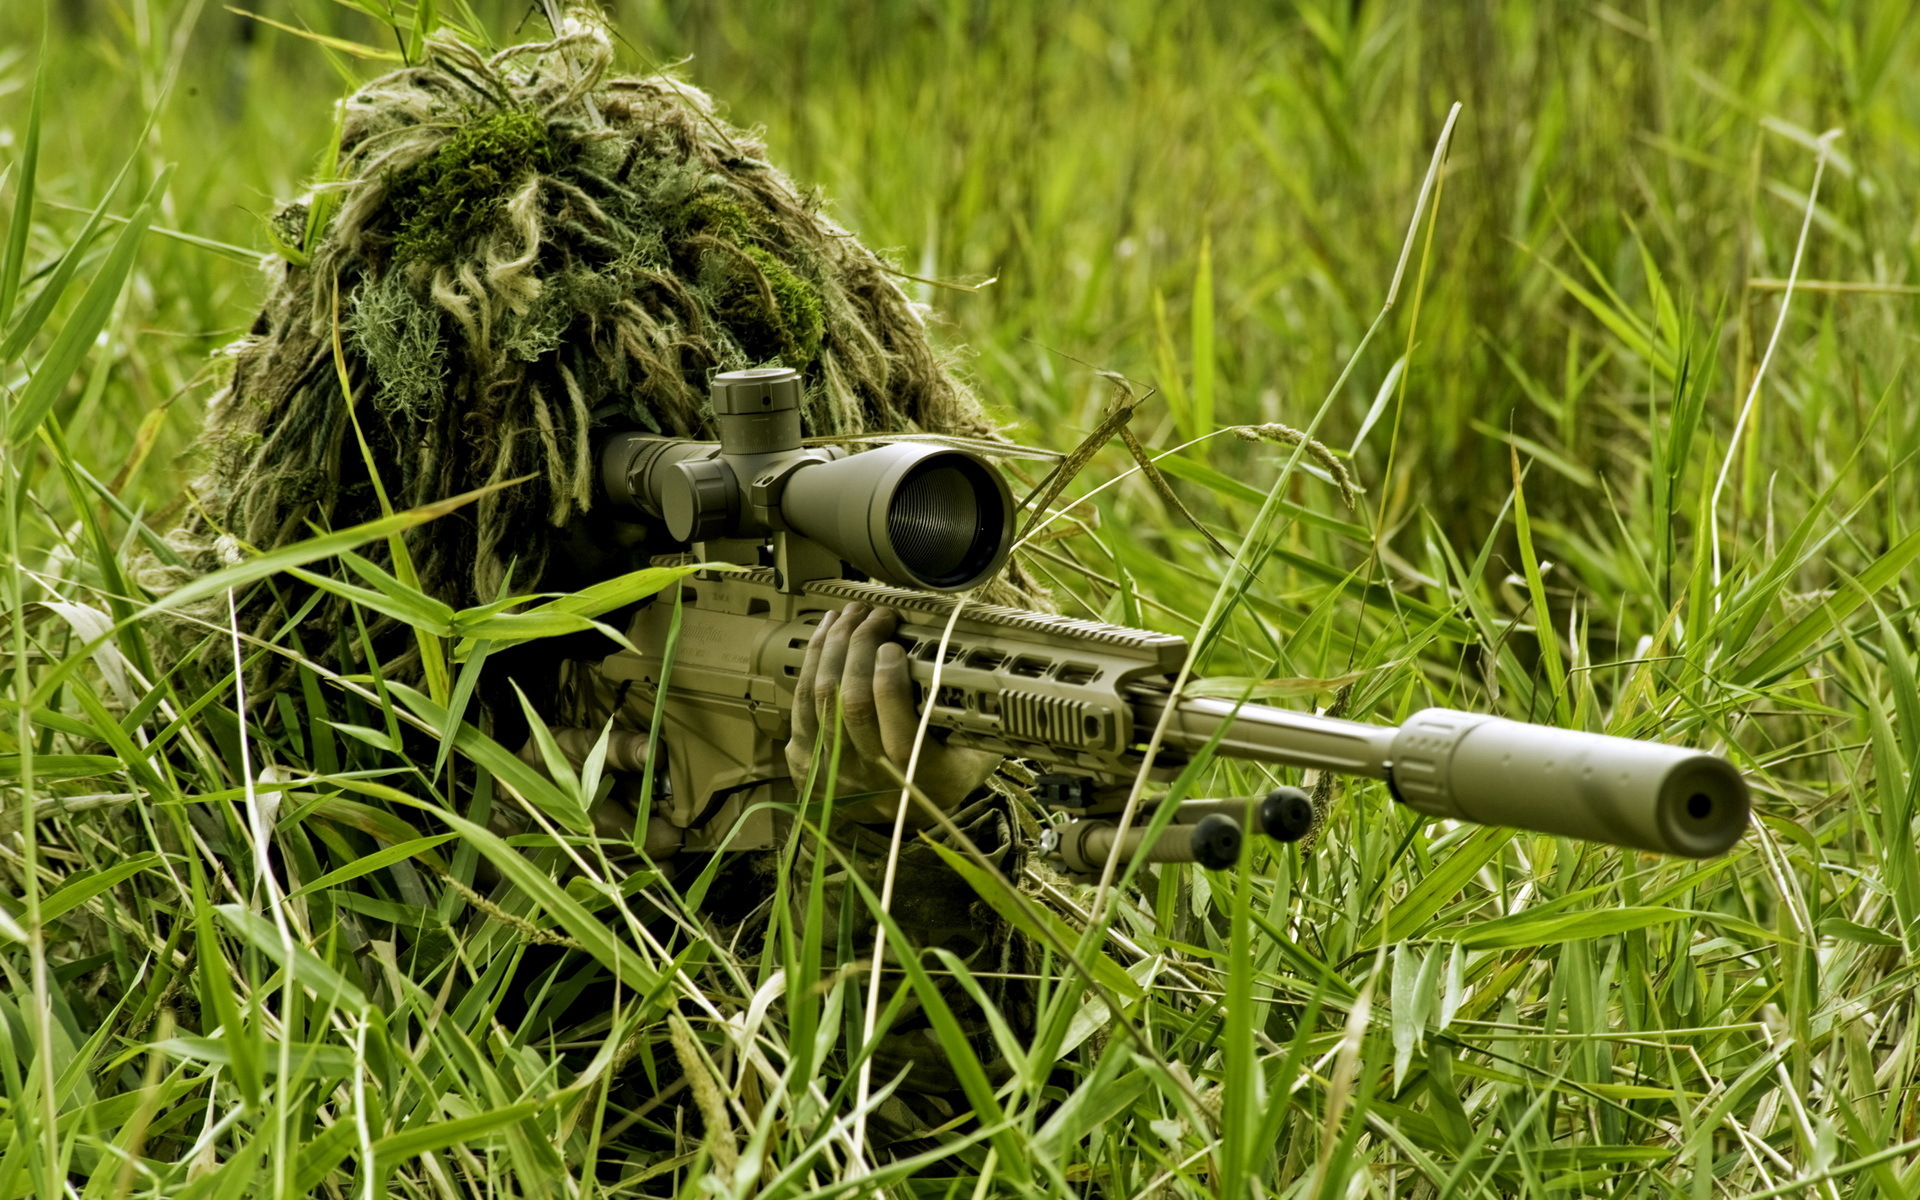 Sniper at work Computer Wallpapers Desktop Backgrounds 1920x1200 1920x1200